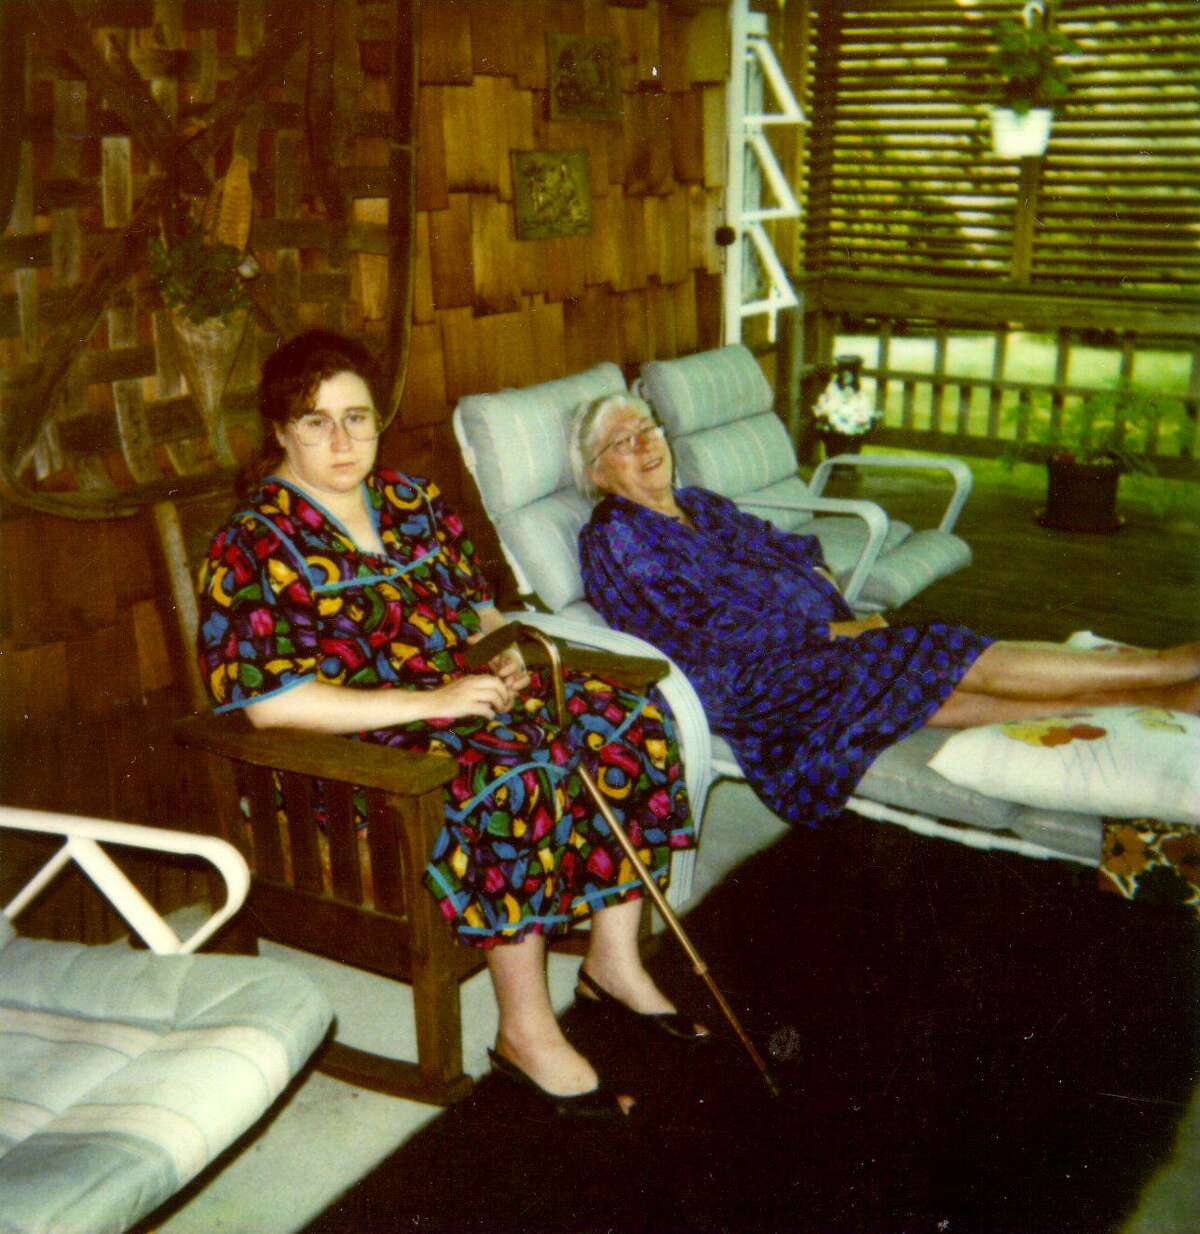 Madalyn Murray O'Hair and her granddaughter Robin relaxing in Virginia in August 1995, shortly before they disappeared.